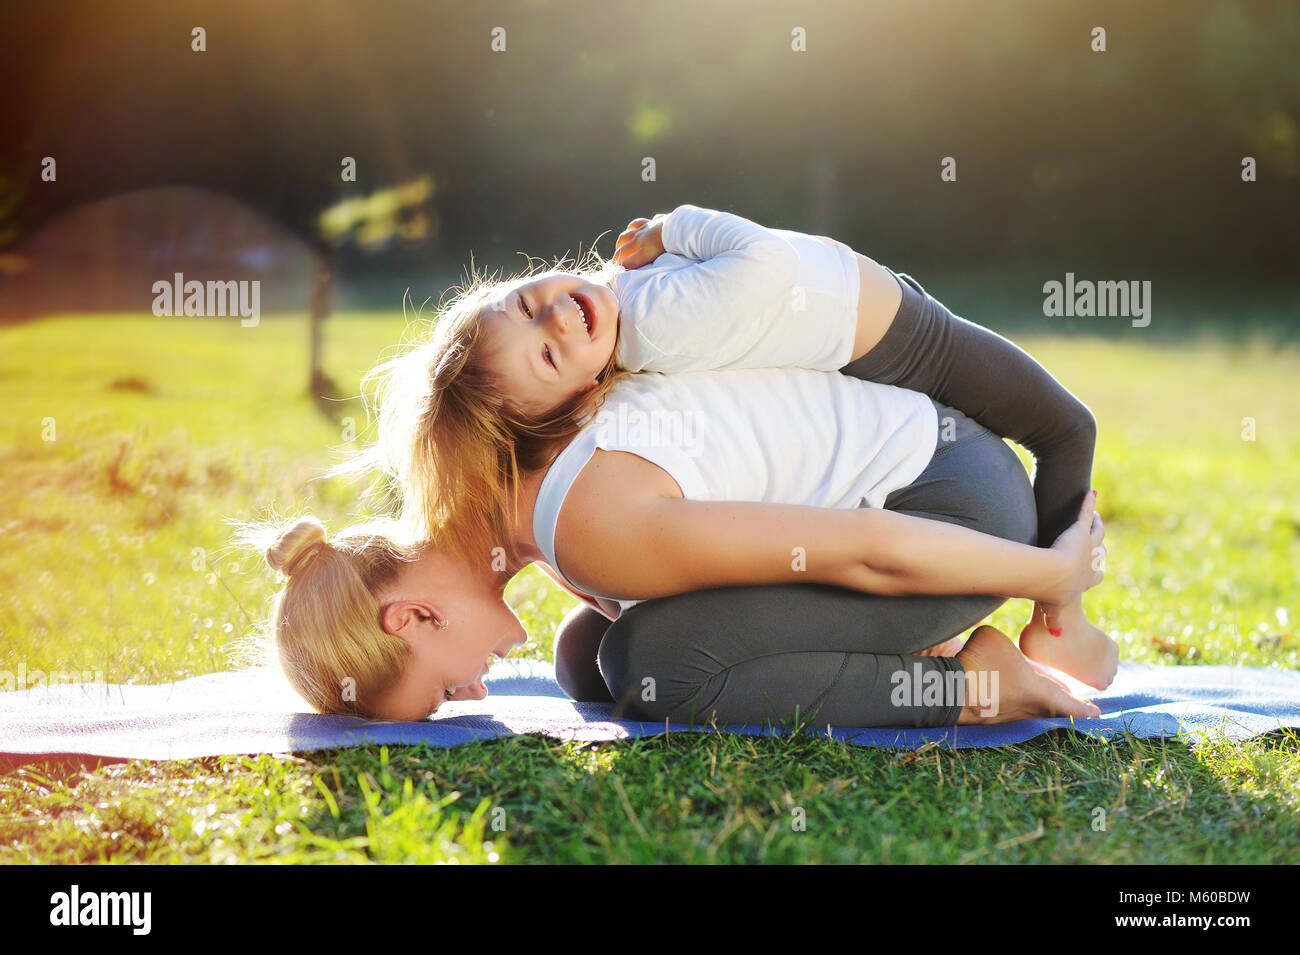 Happy little girl playing with her mom practicing child yoga pose Stock Photo